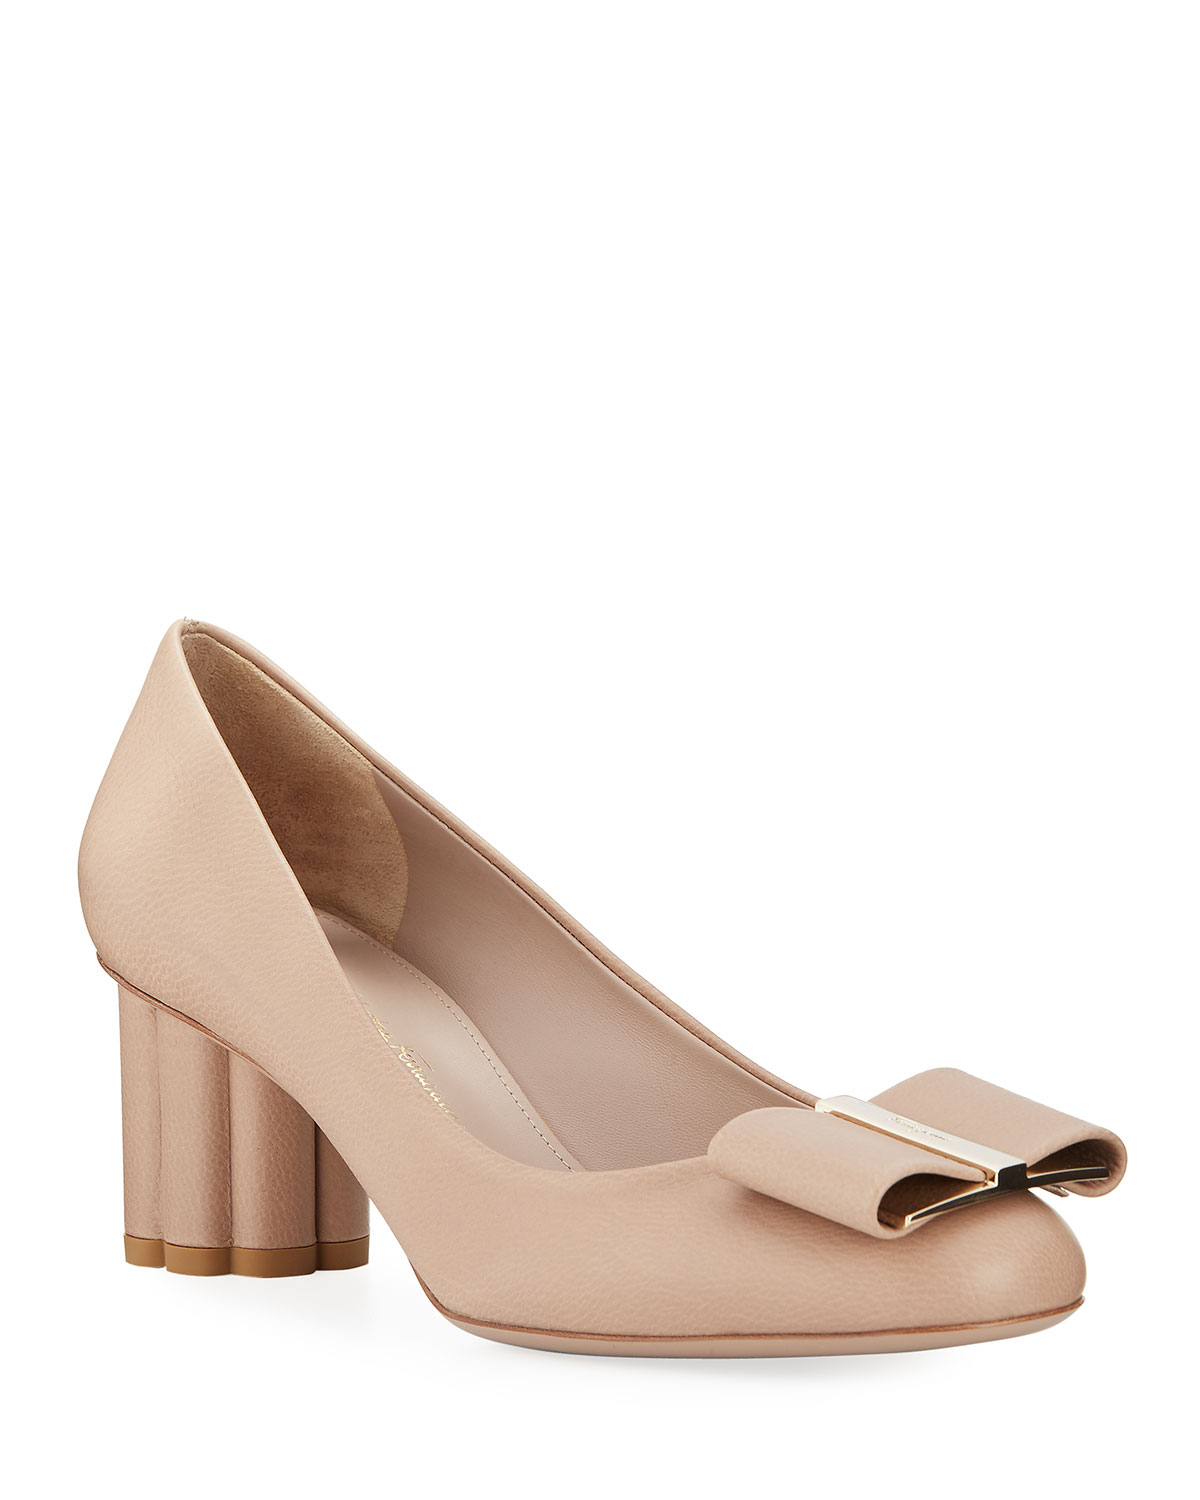 Capua Leather Bow Pumps by Salvatore Ferragamo